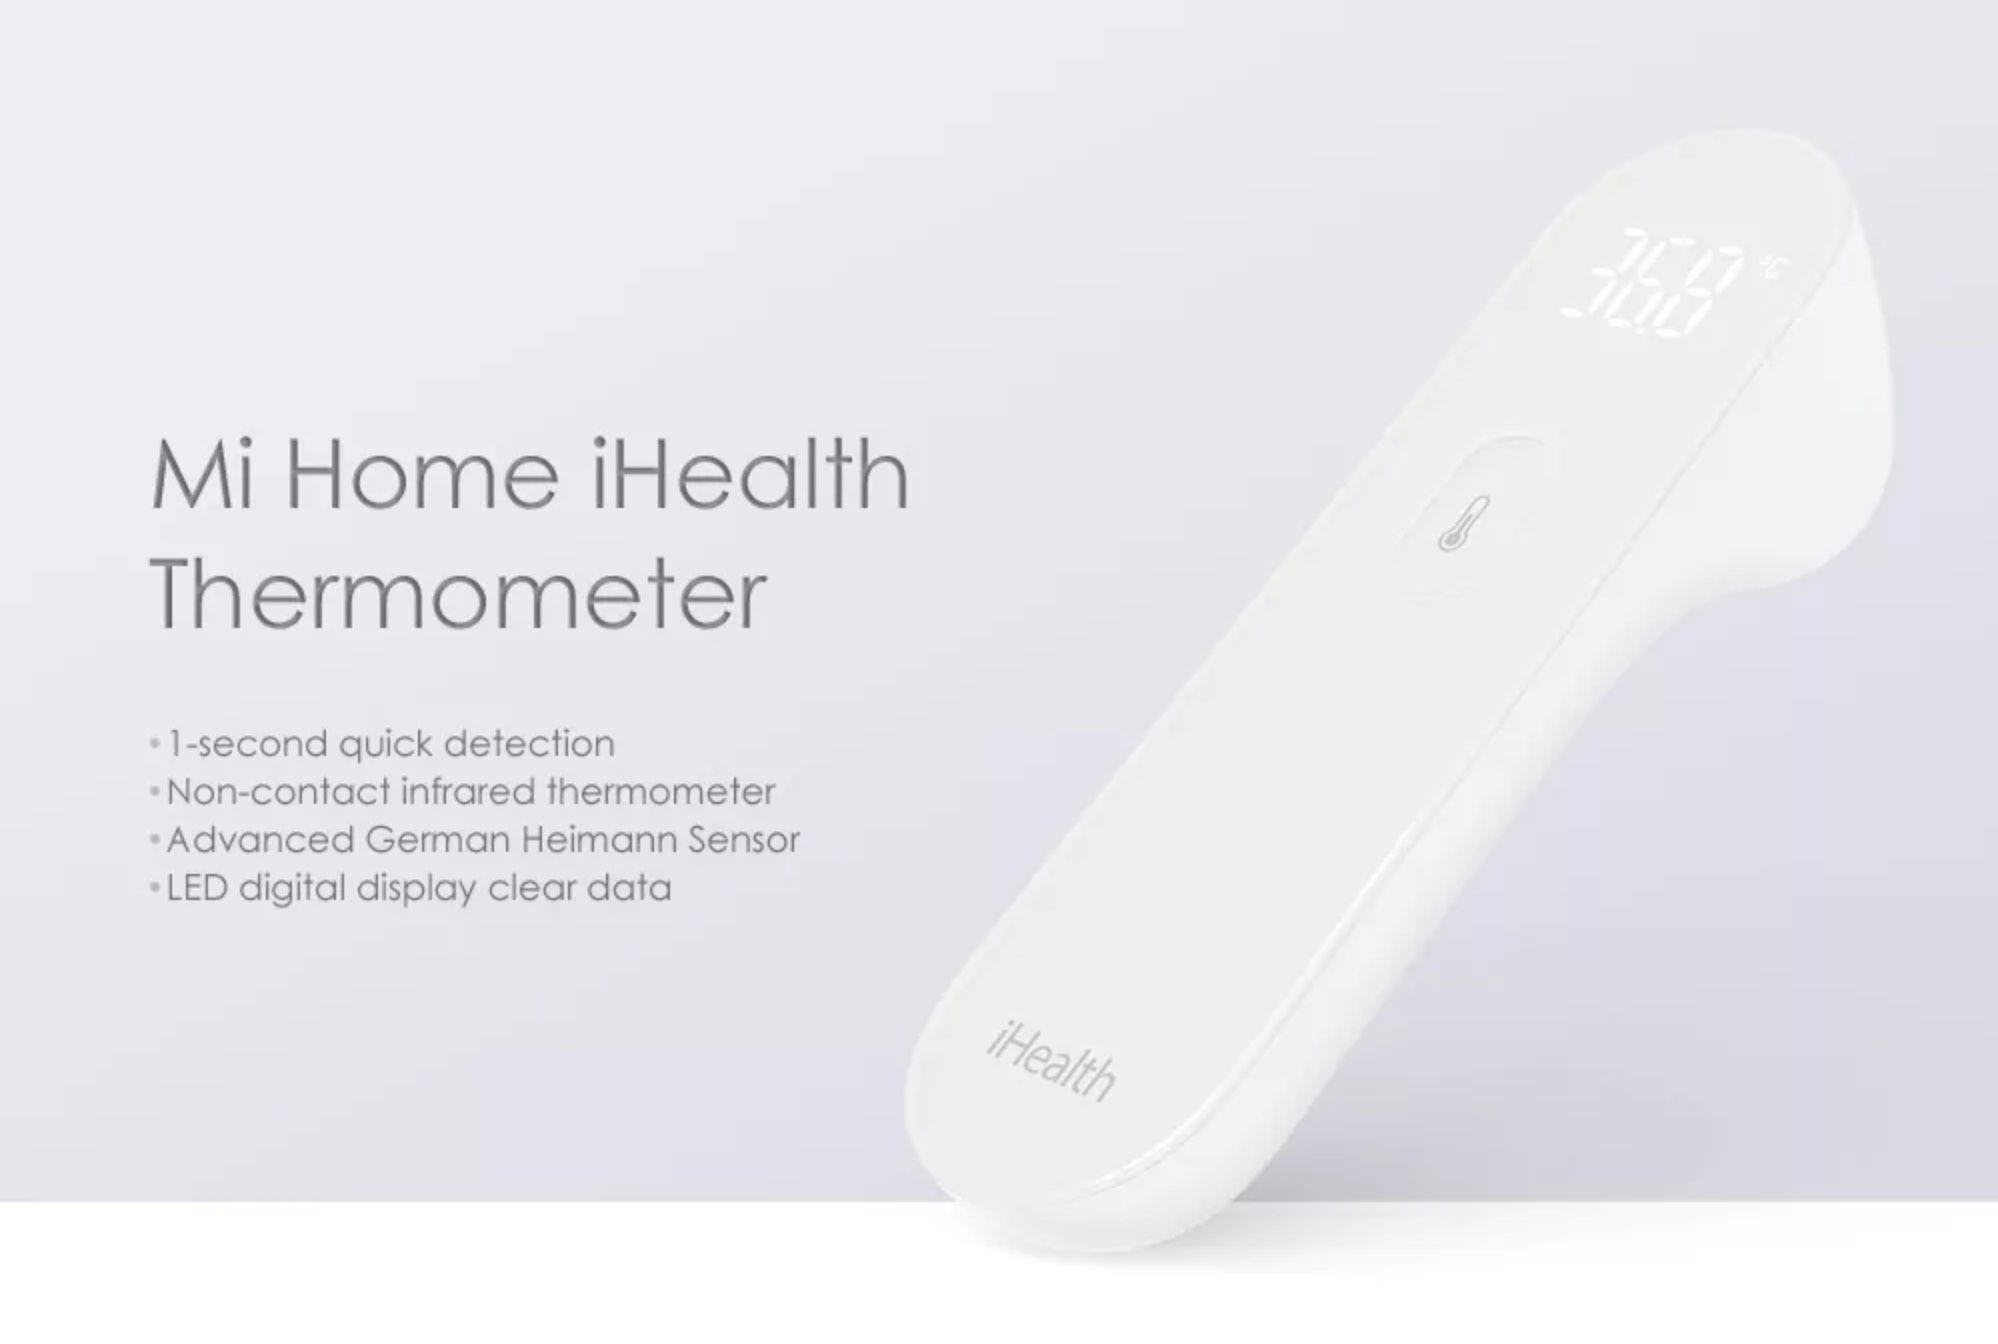 Gearbest: Xiaomi Mi Home iHealth Thermometer